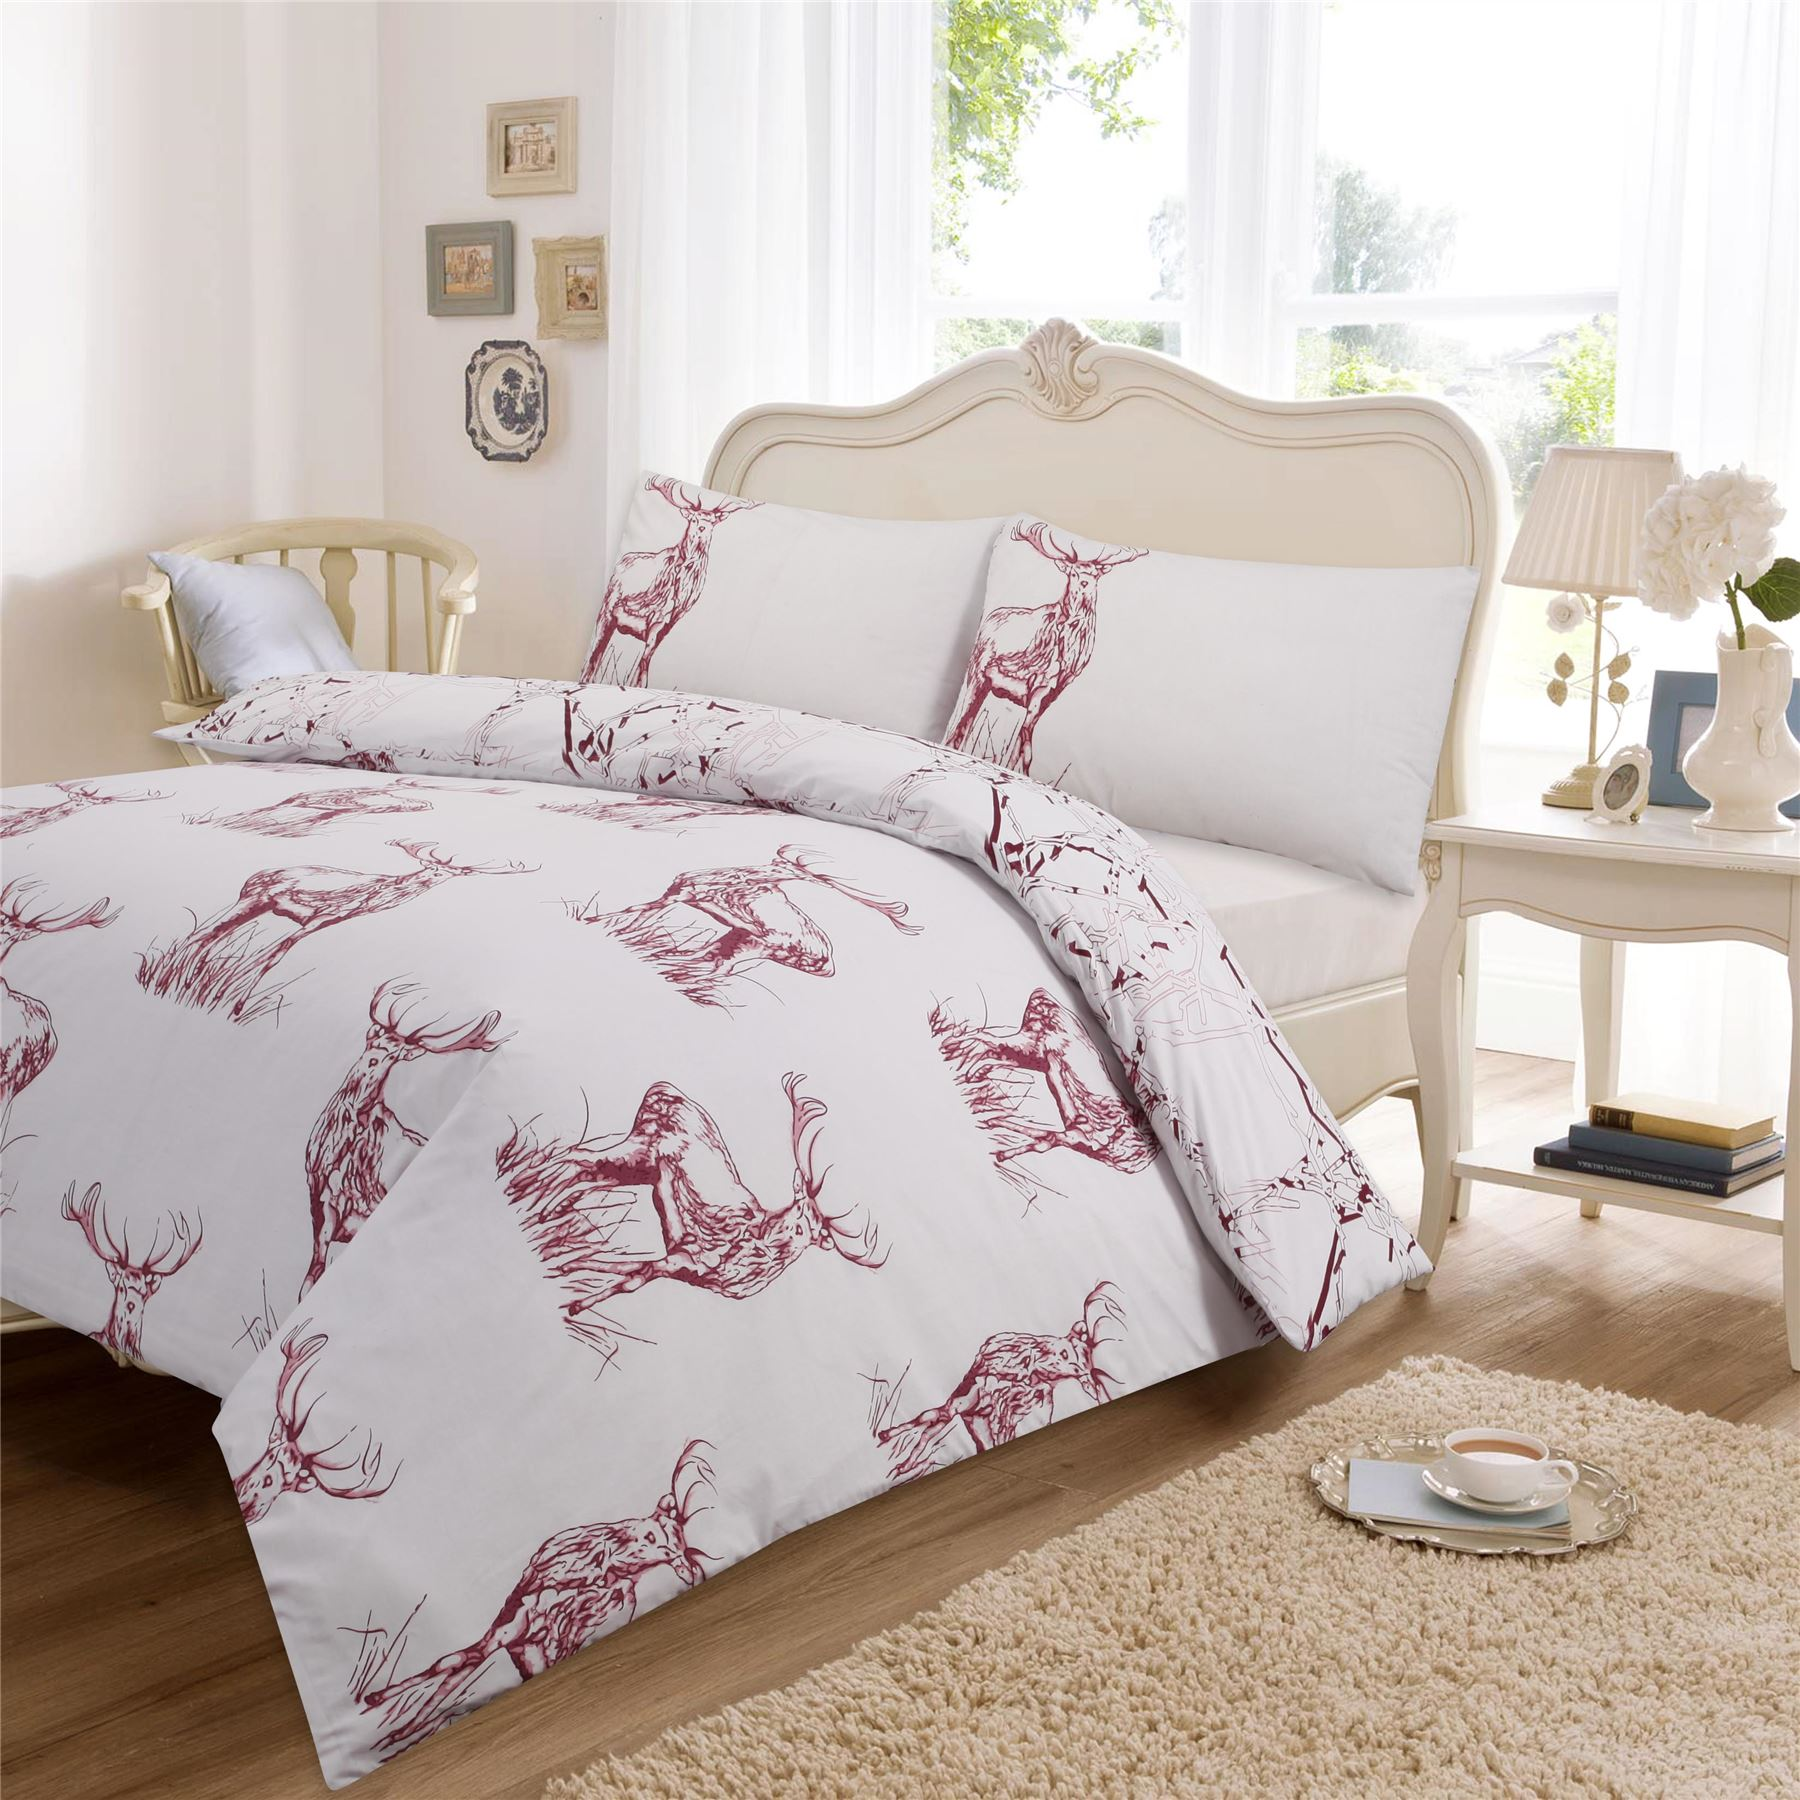 Luxury Printed Duvet Cover With Pillow Case Quilt Cover